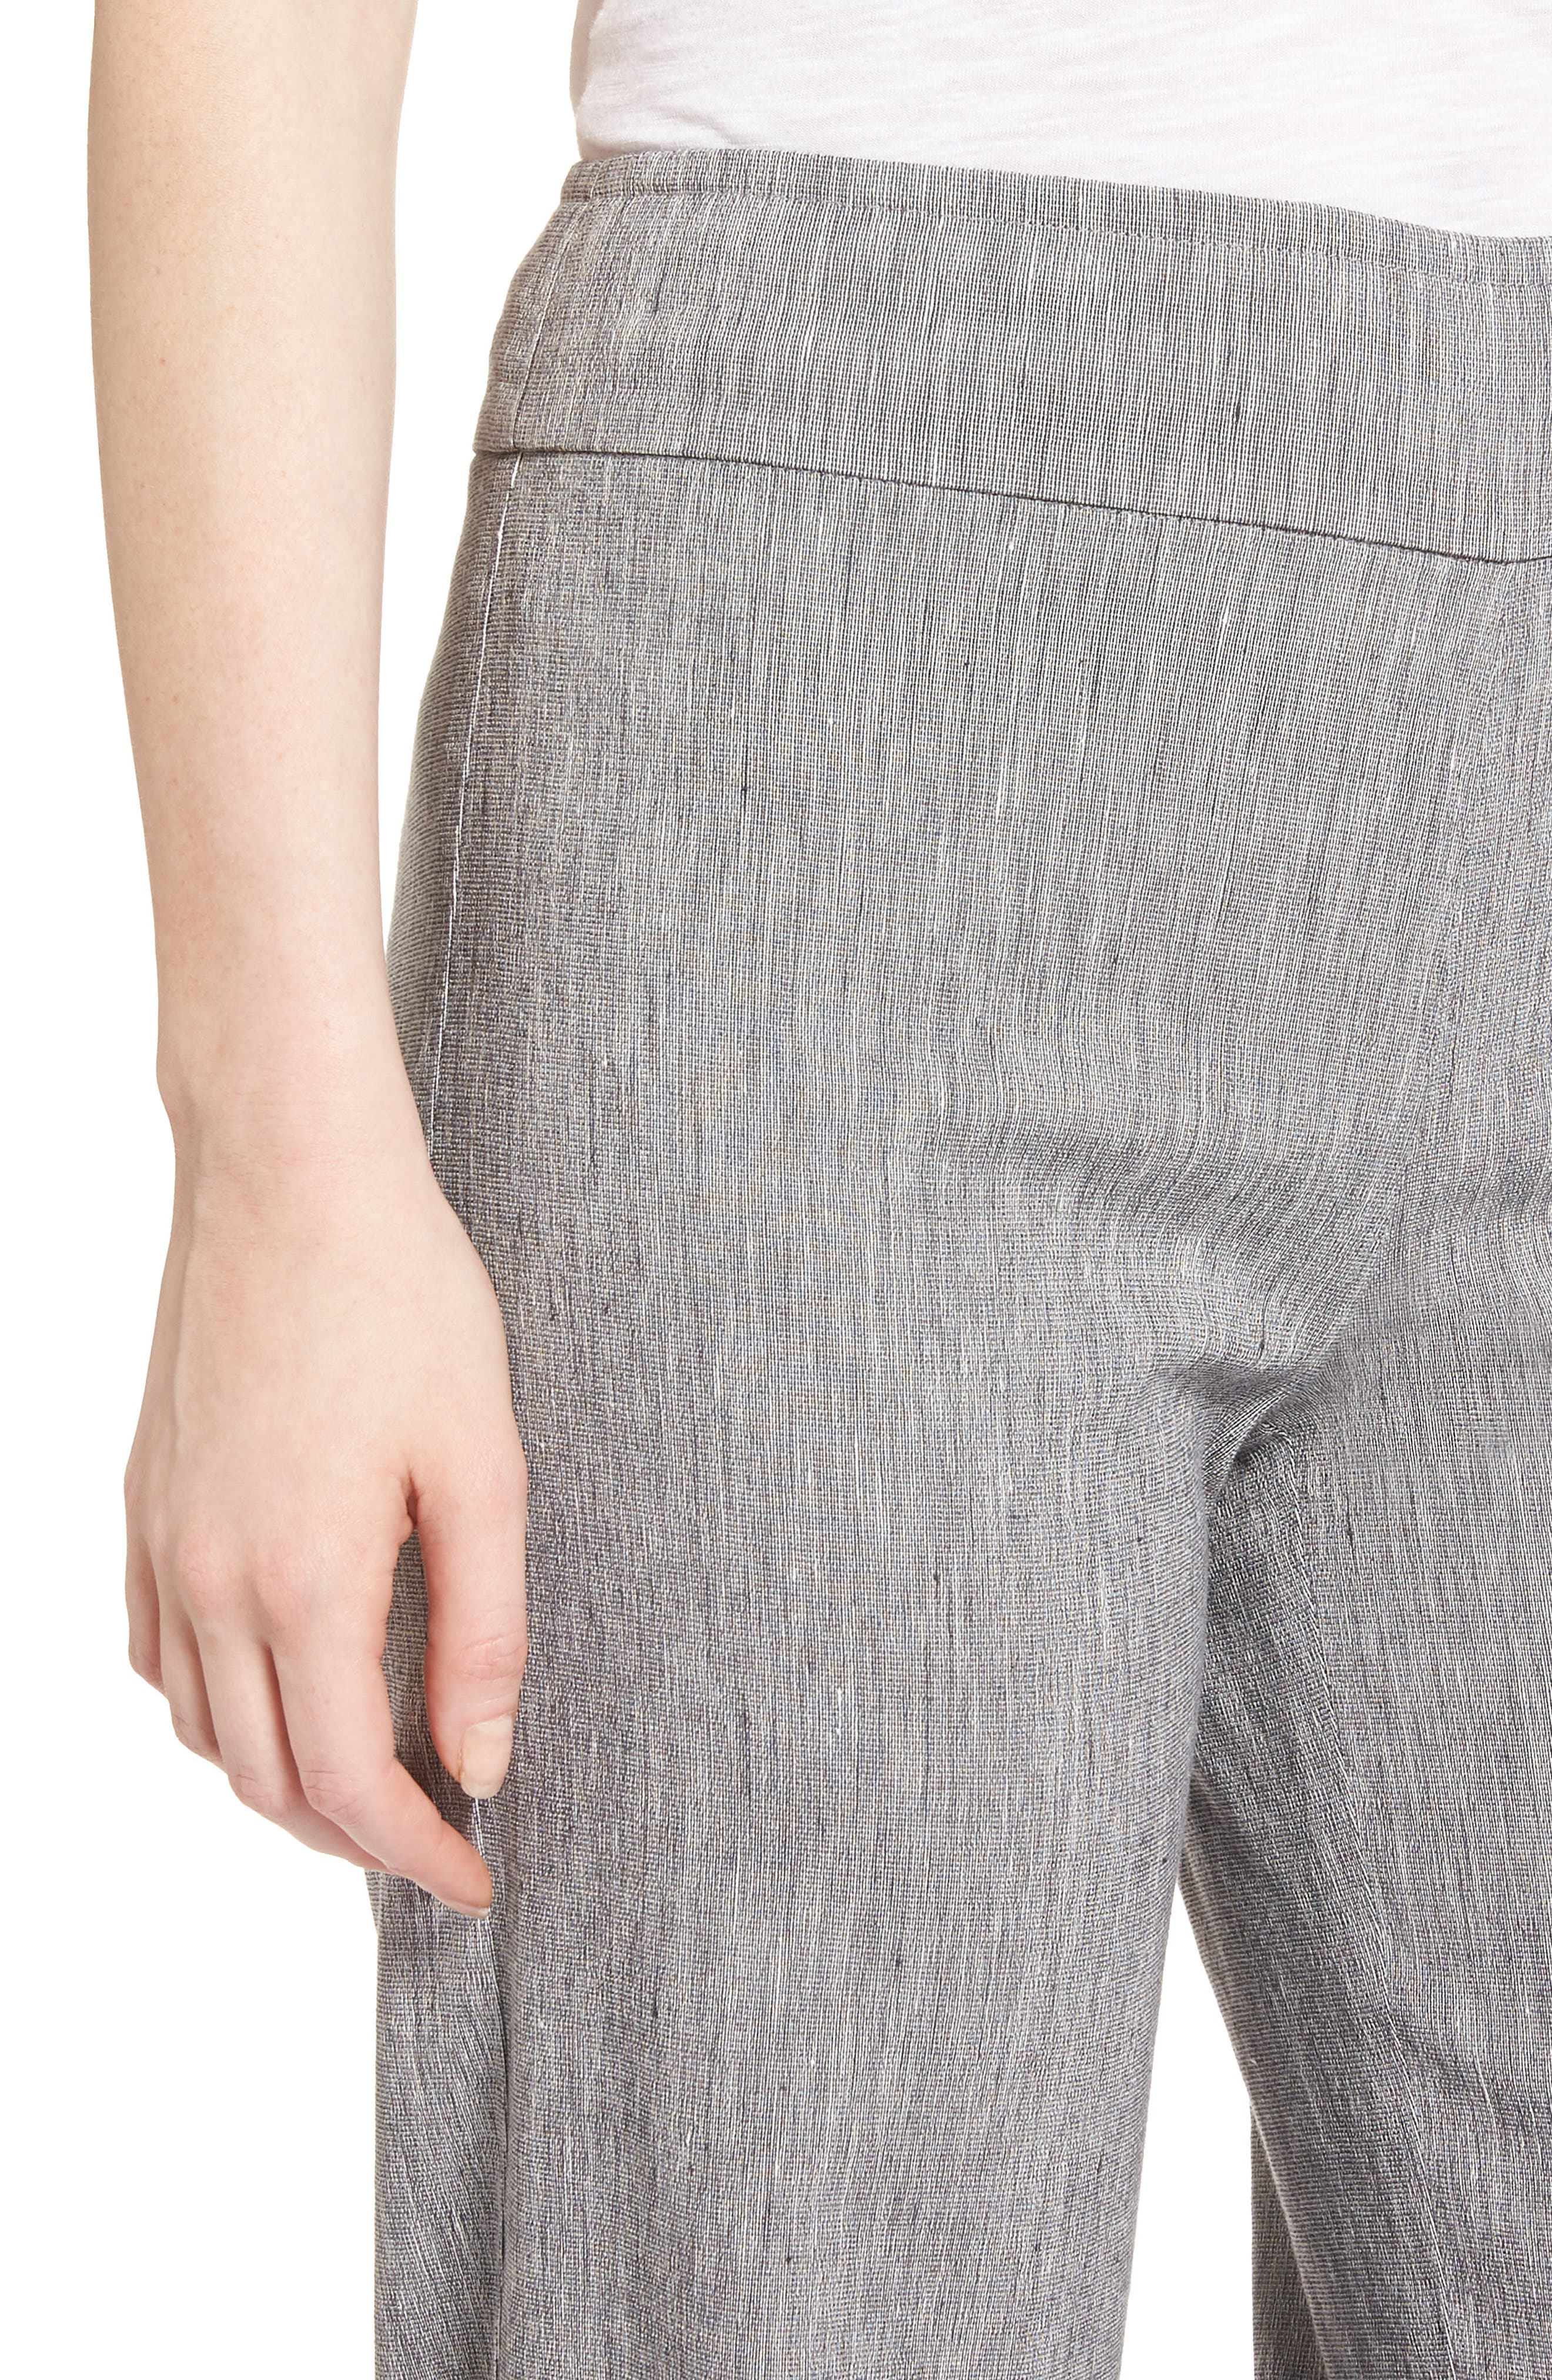 Here or There Linen Blend Pants,                             Alternate thumbnail 4, color,                             099